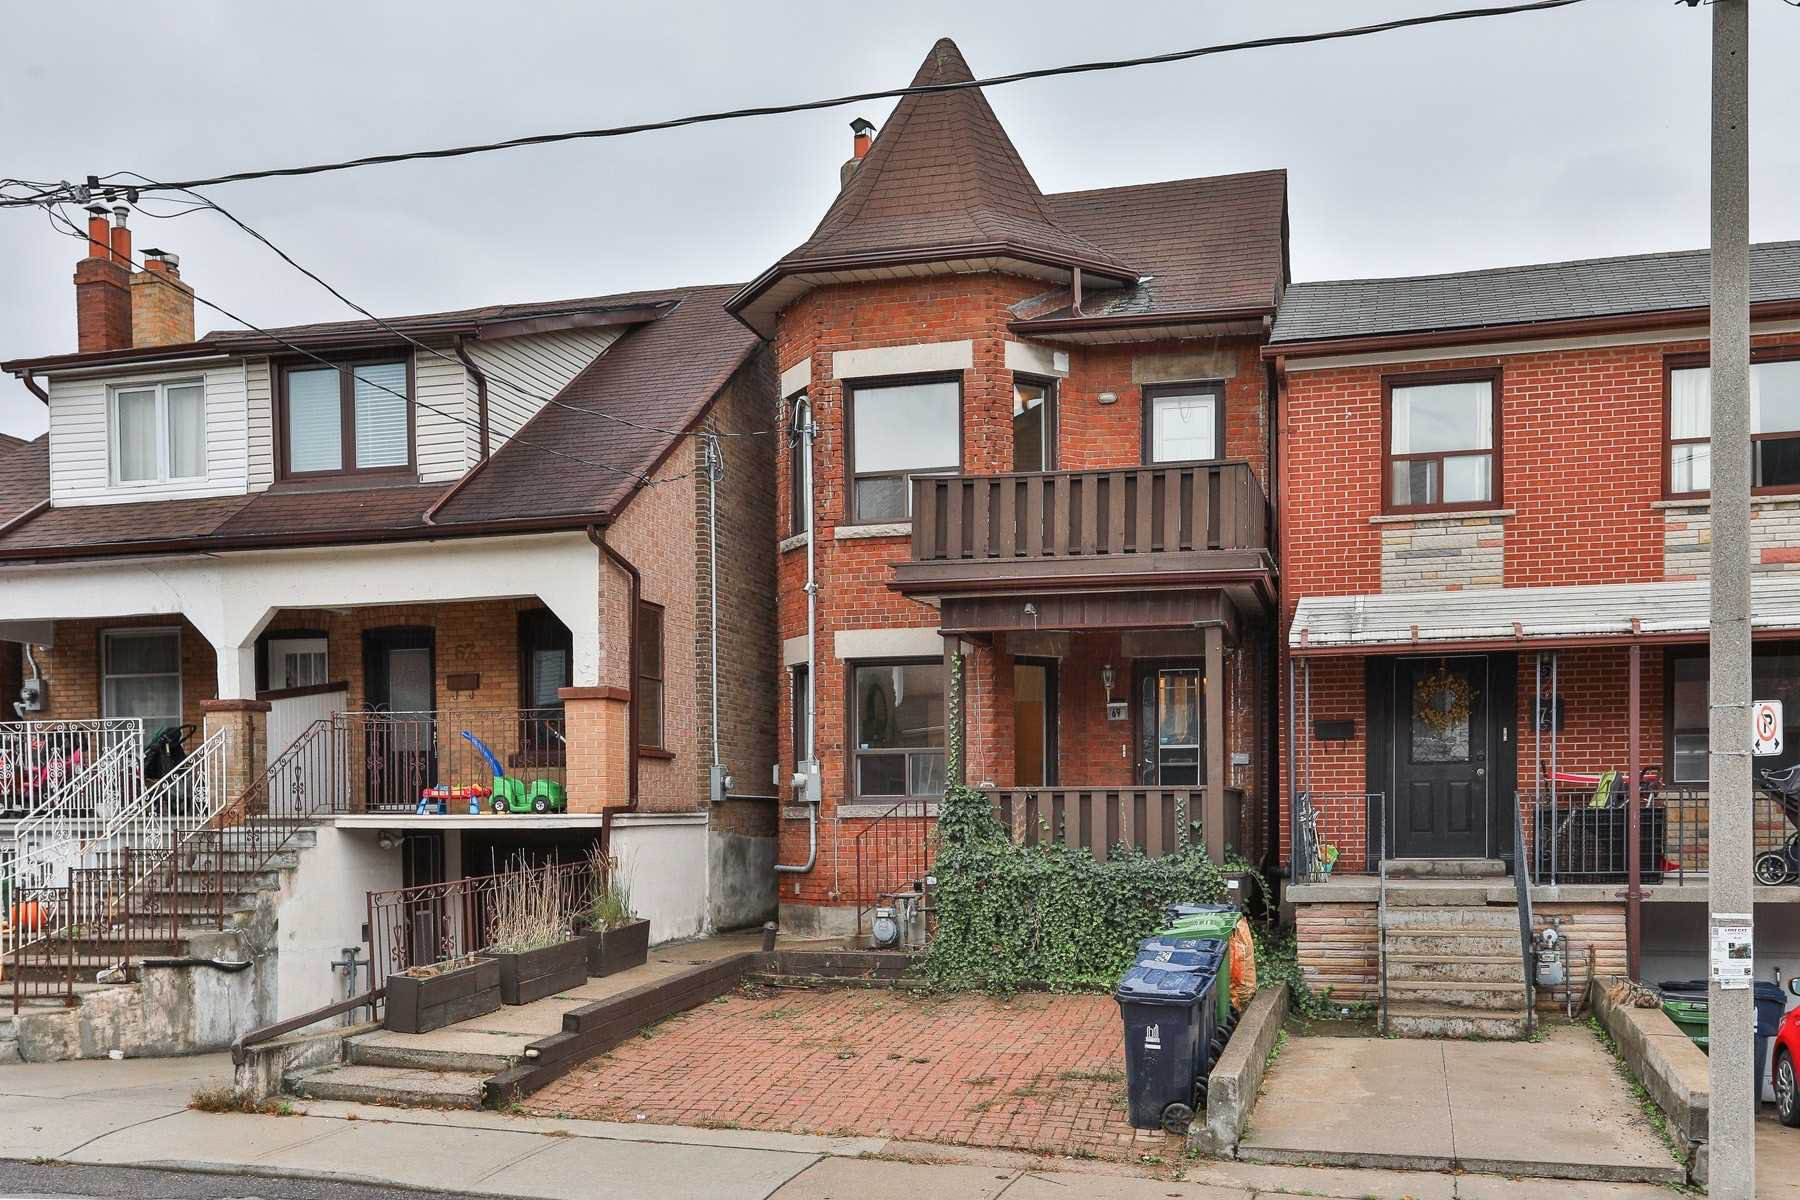 Main Photo: 69 Auburn Avenue in Toronto: Corso Italia-Davenport House (2-Storey) for sale (Toronto W03)  : MLS®# W4594421